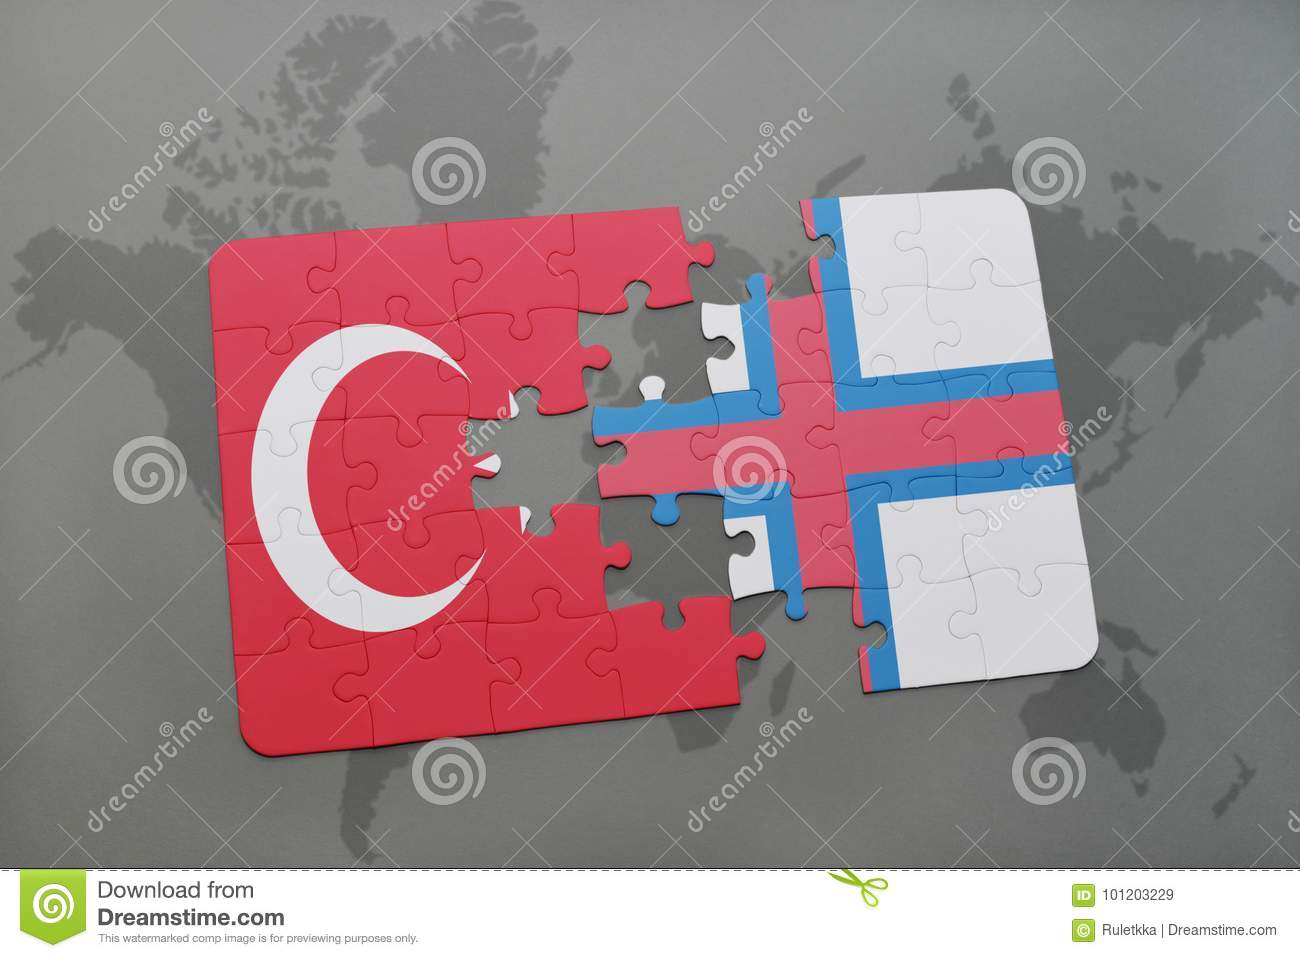 puzzle with the national flag of turkey and faroe islands on a world map background.